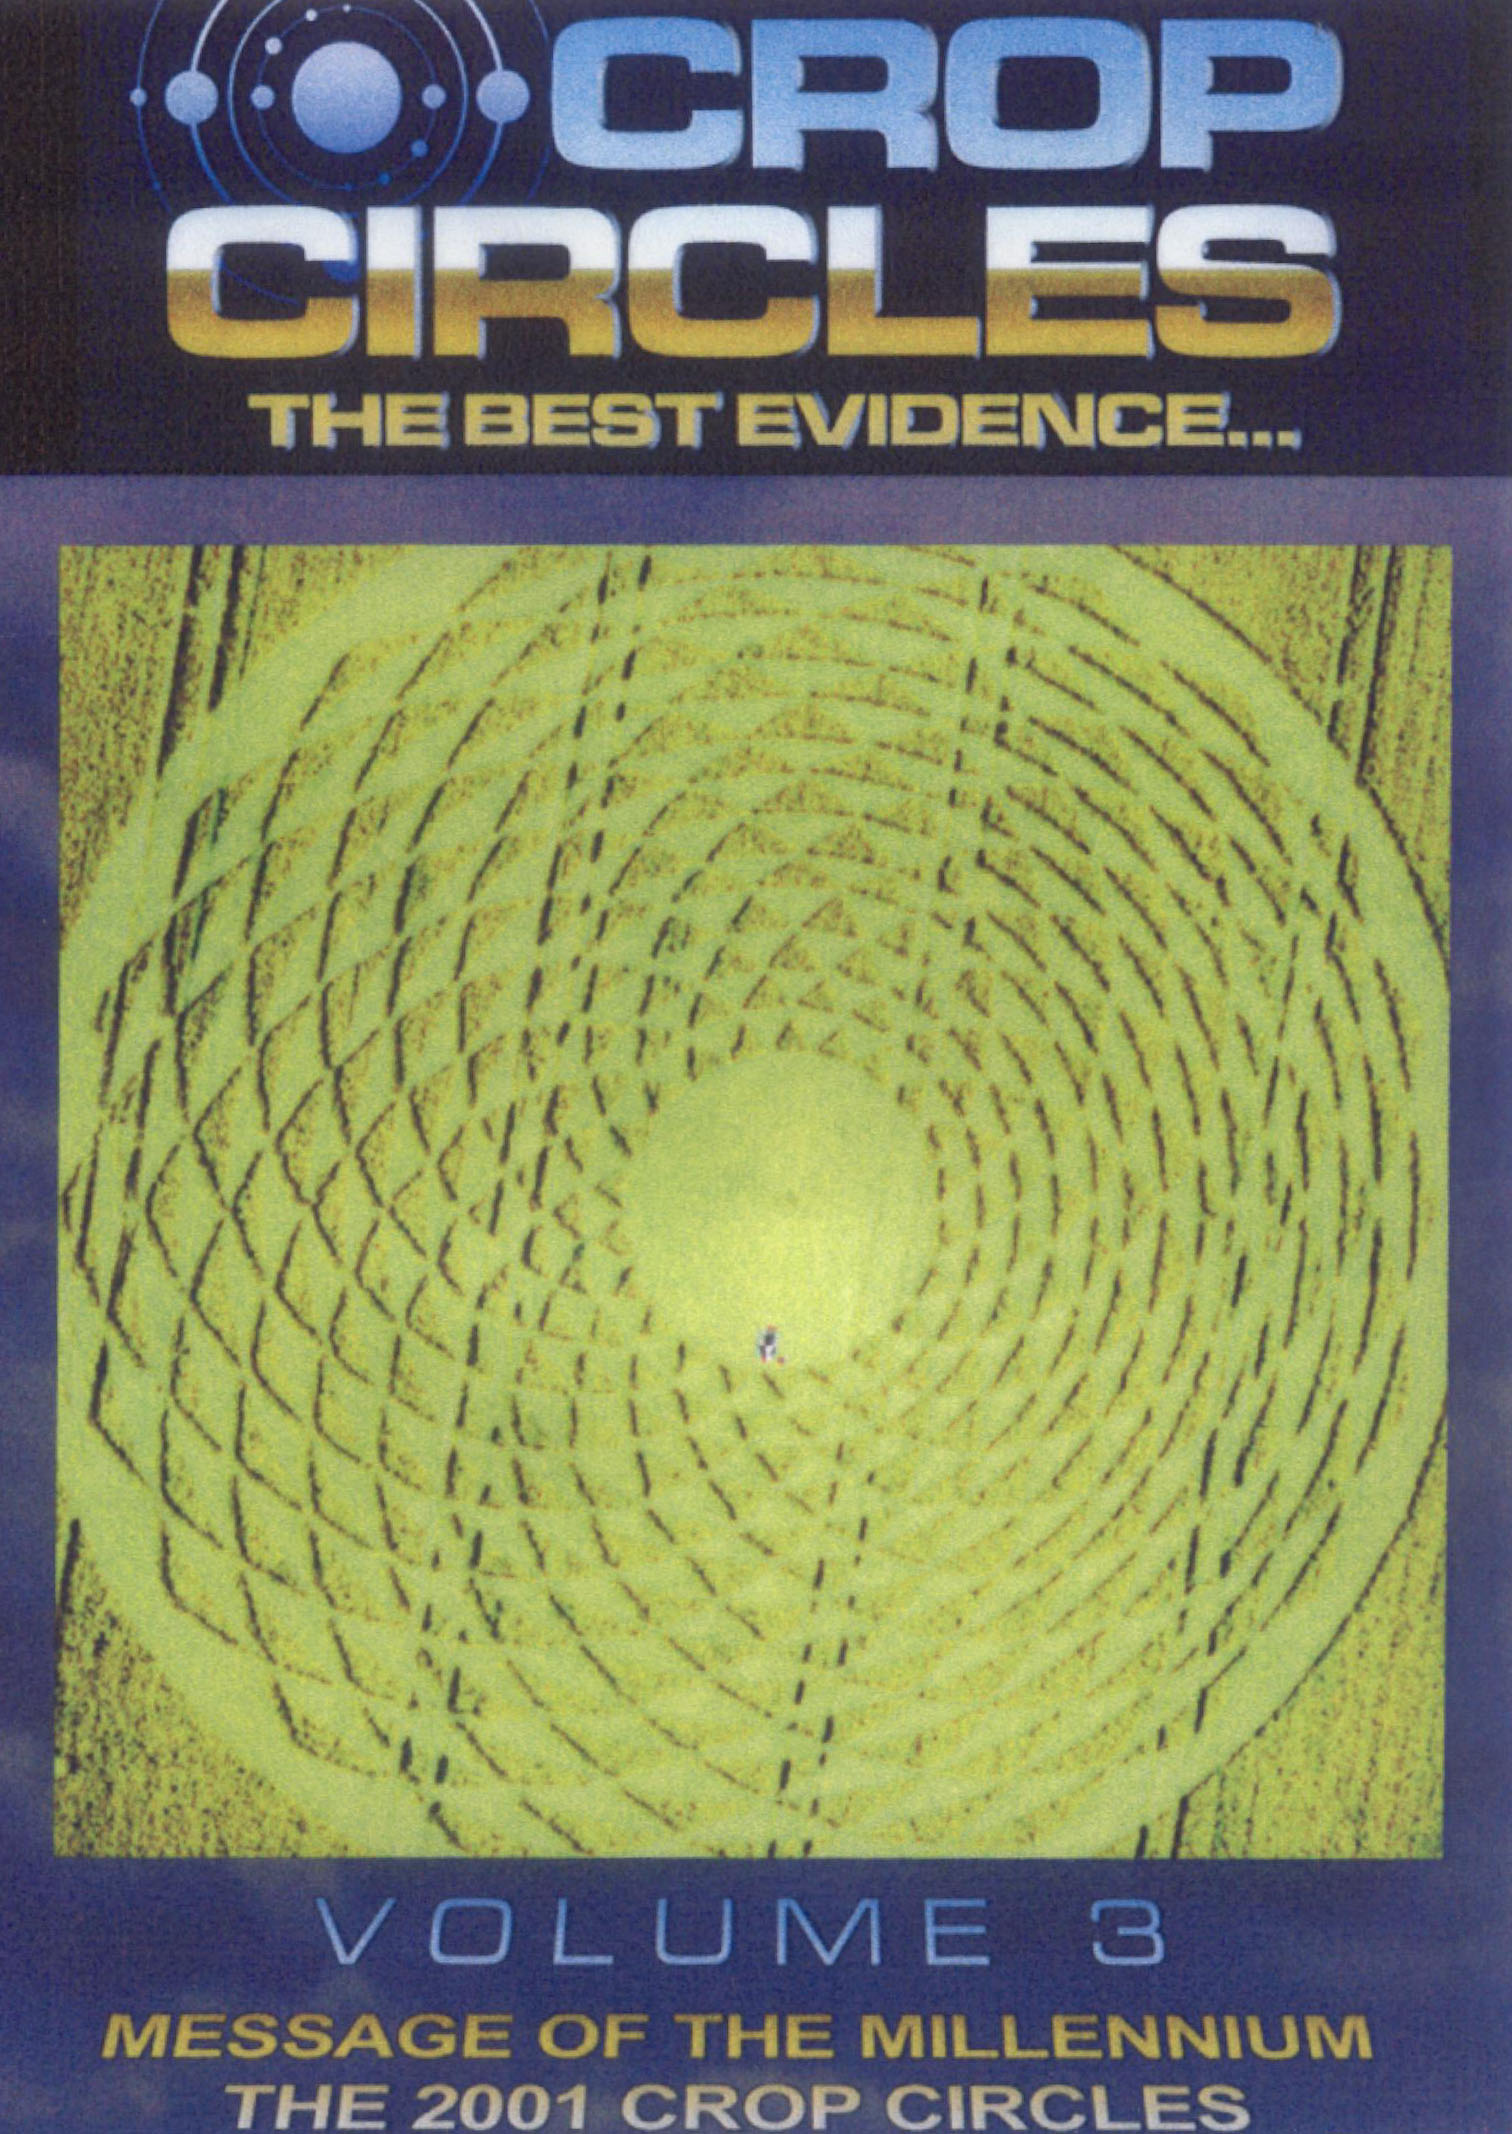 Crop Circles: The Best Evidence, Vol. 3 - Message of the Millennium - The 2001 Crop Circles